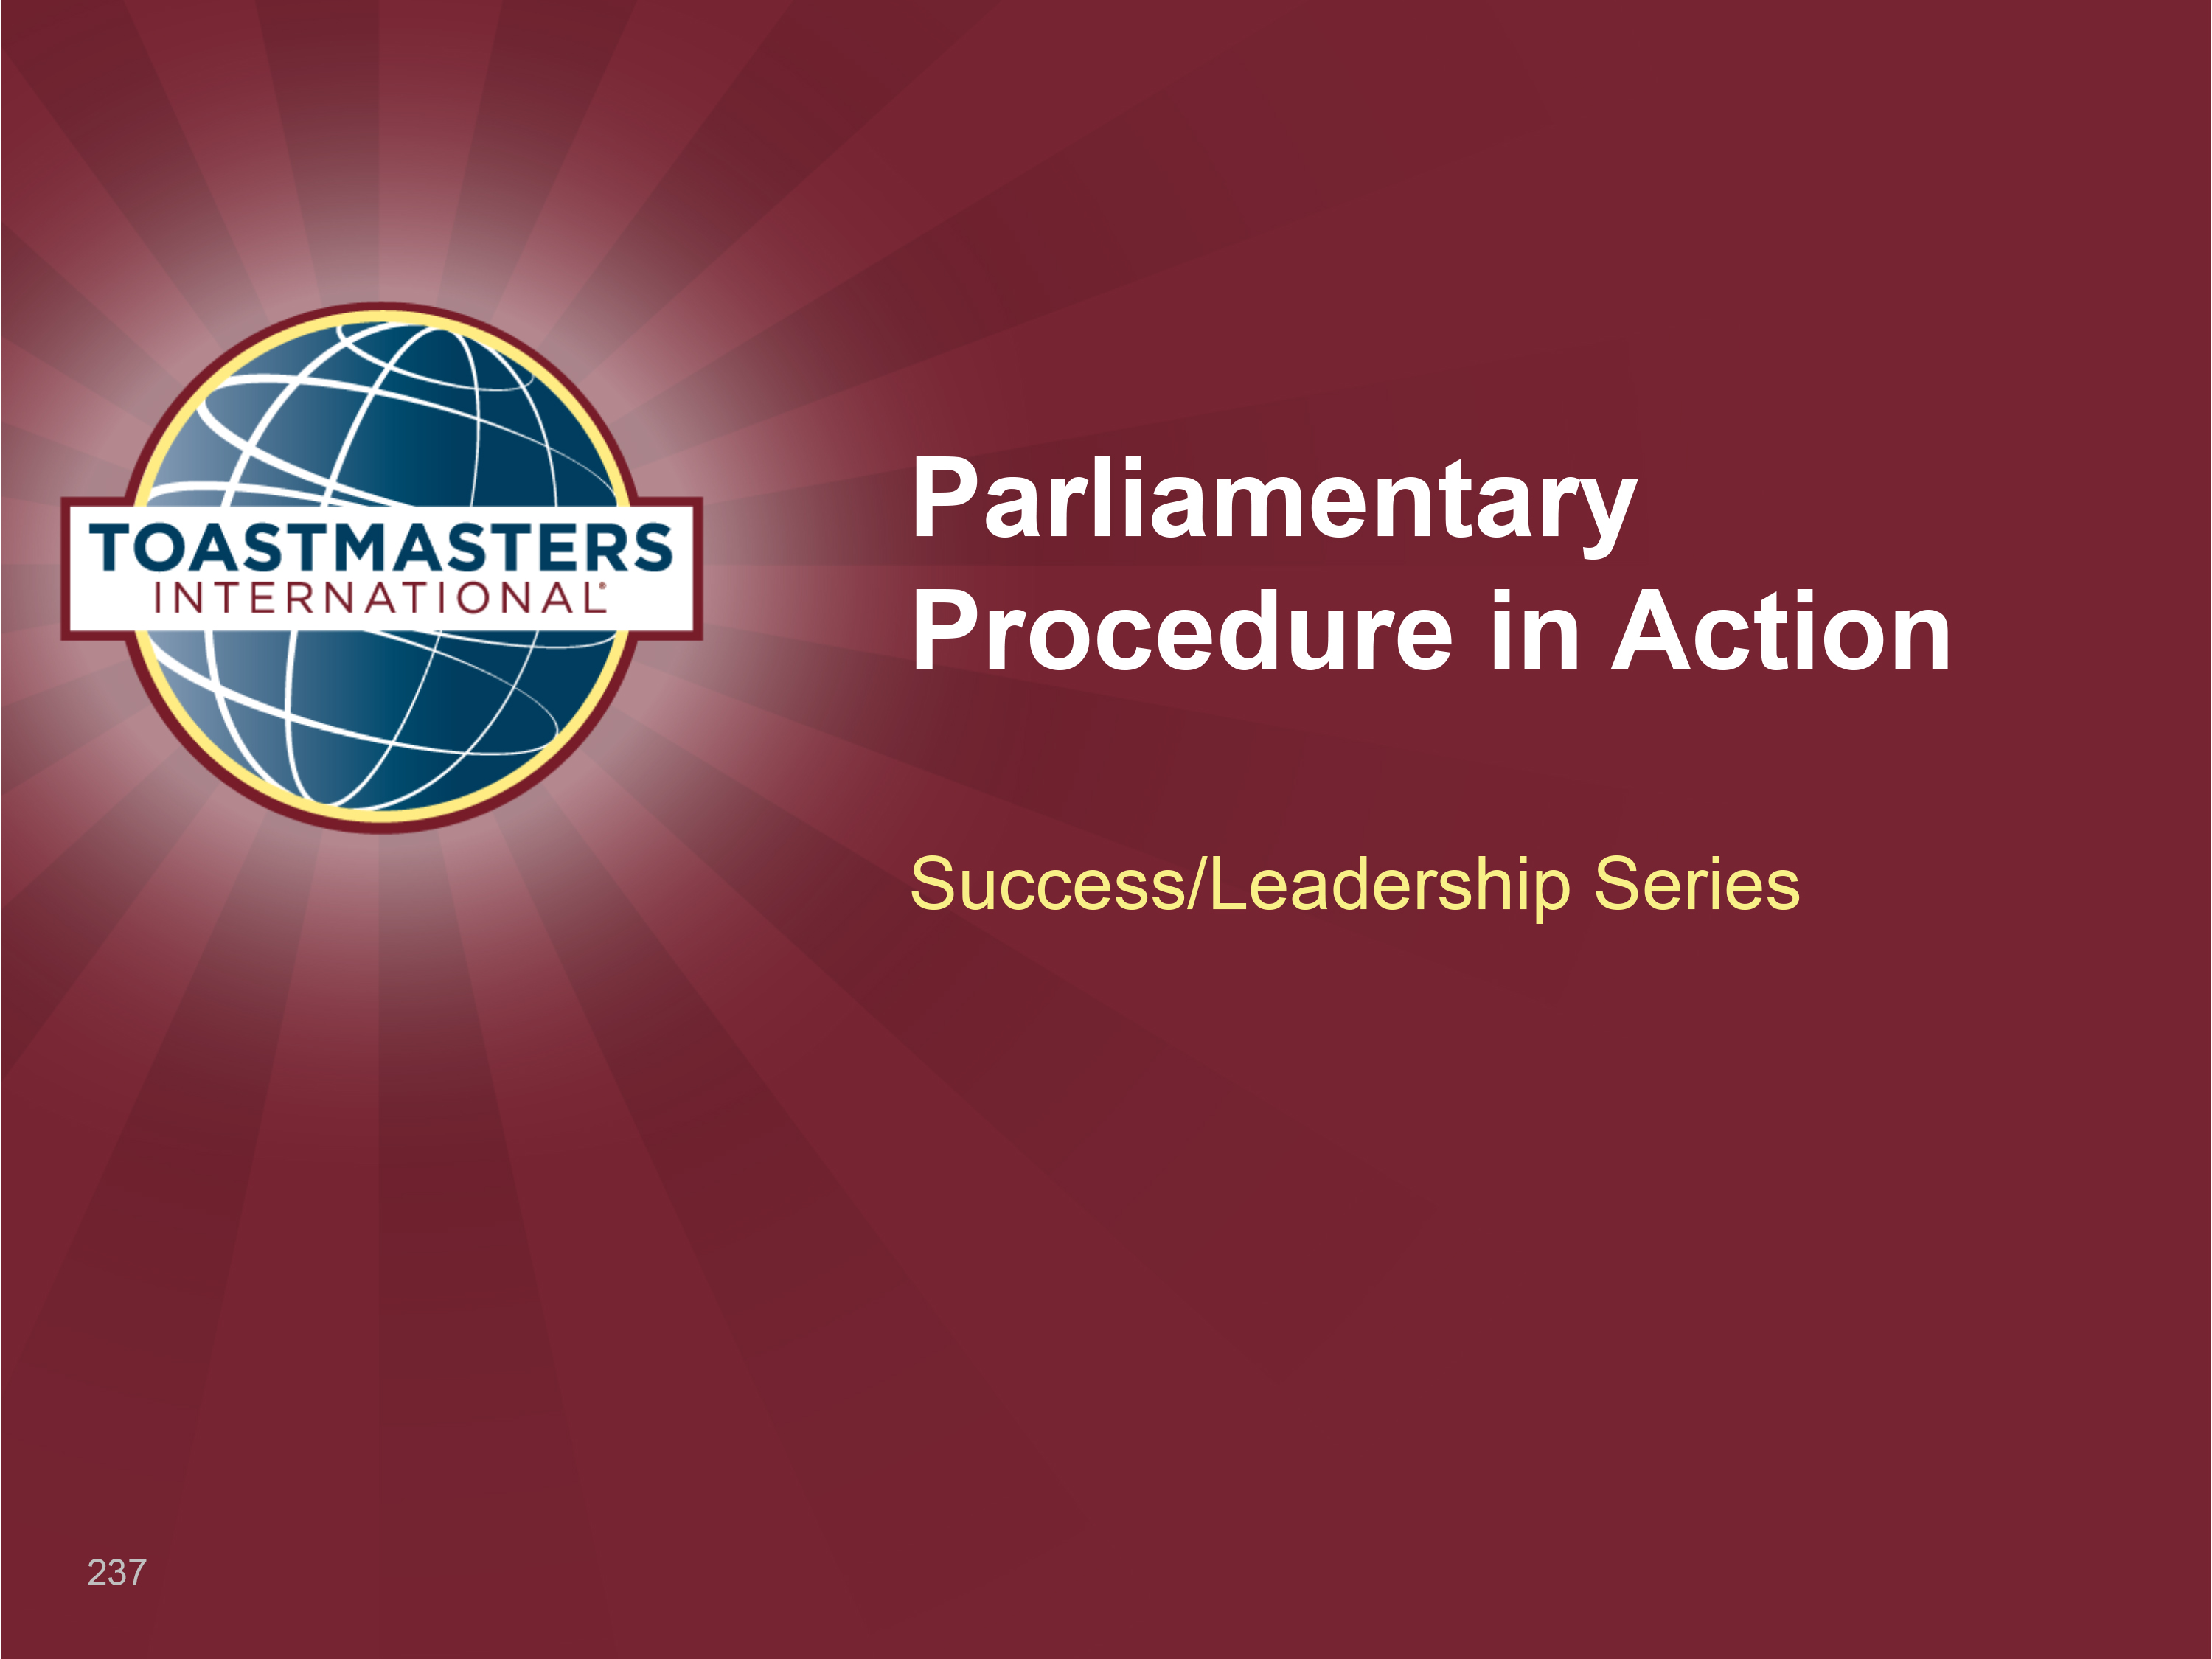 Parliamentary Procedure in Action Workshop (PPT)